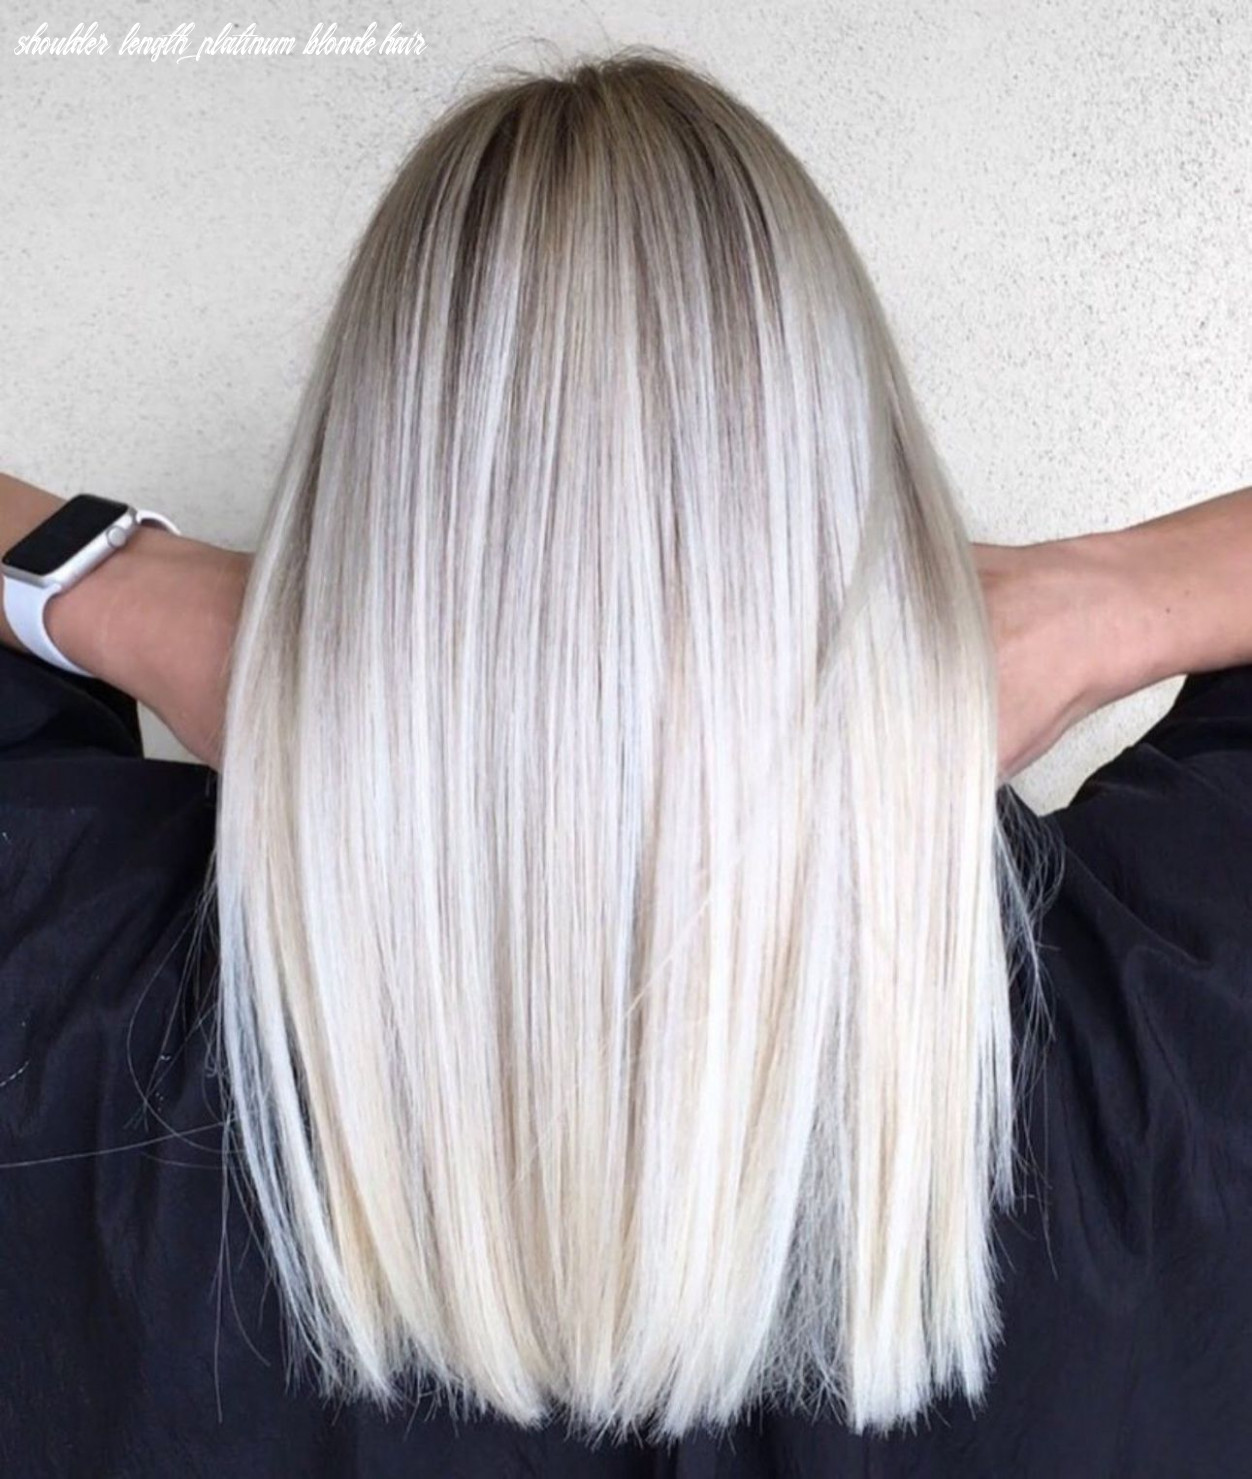 Tips and tricks to help avoid hair loss today | platinum blonde